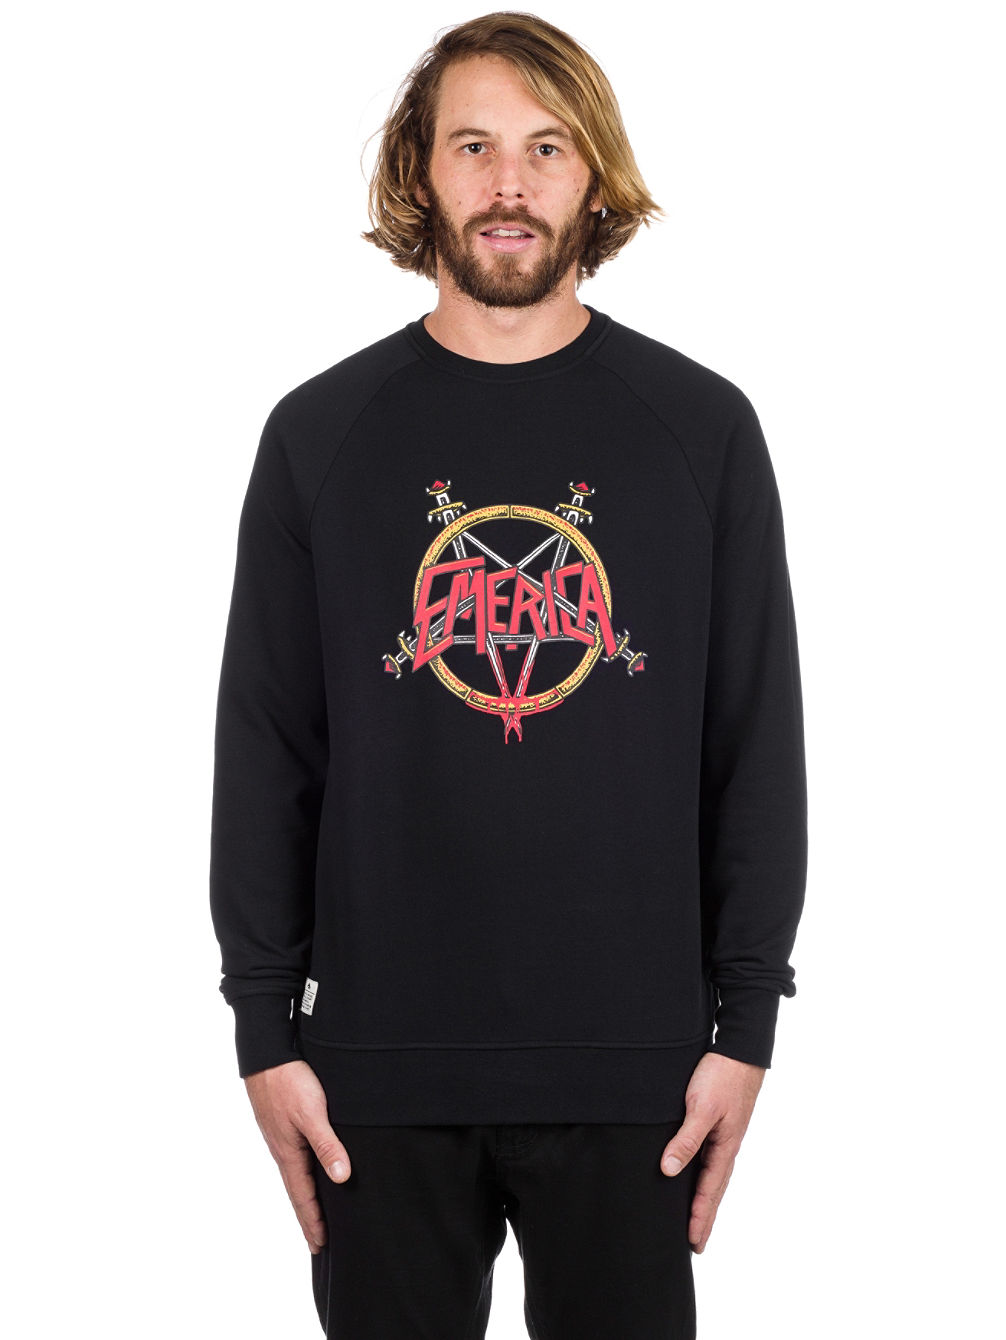 Arrows Crewneck Sweater